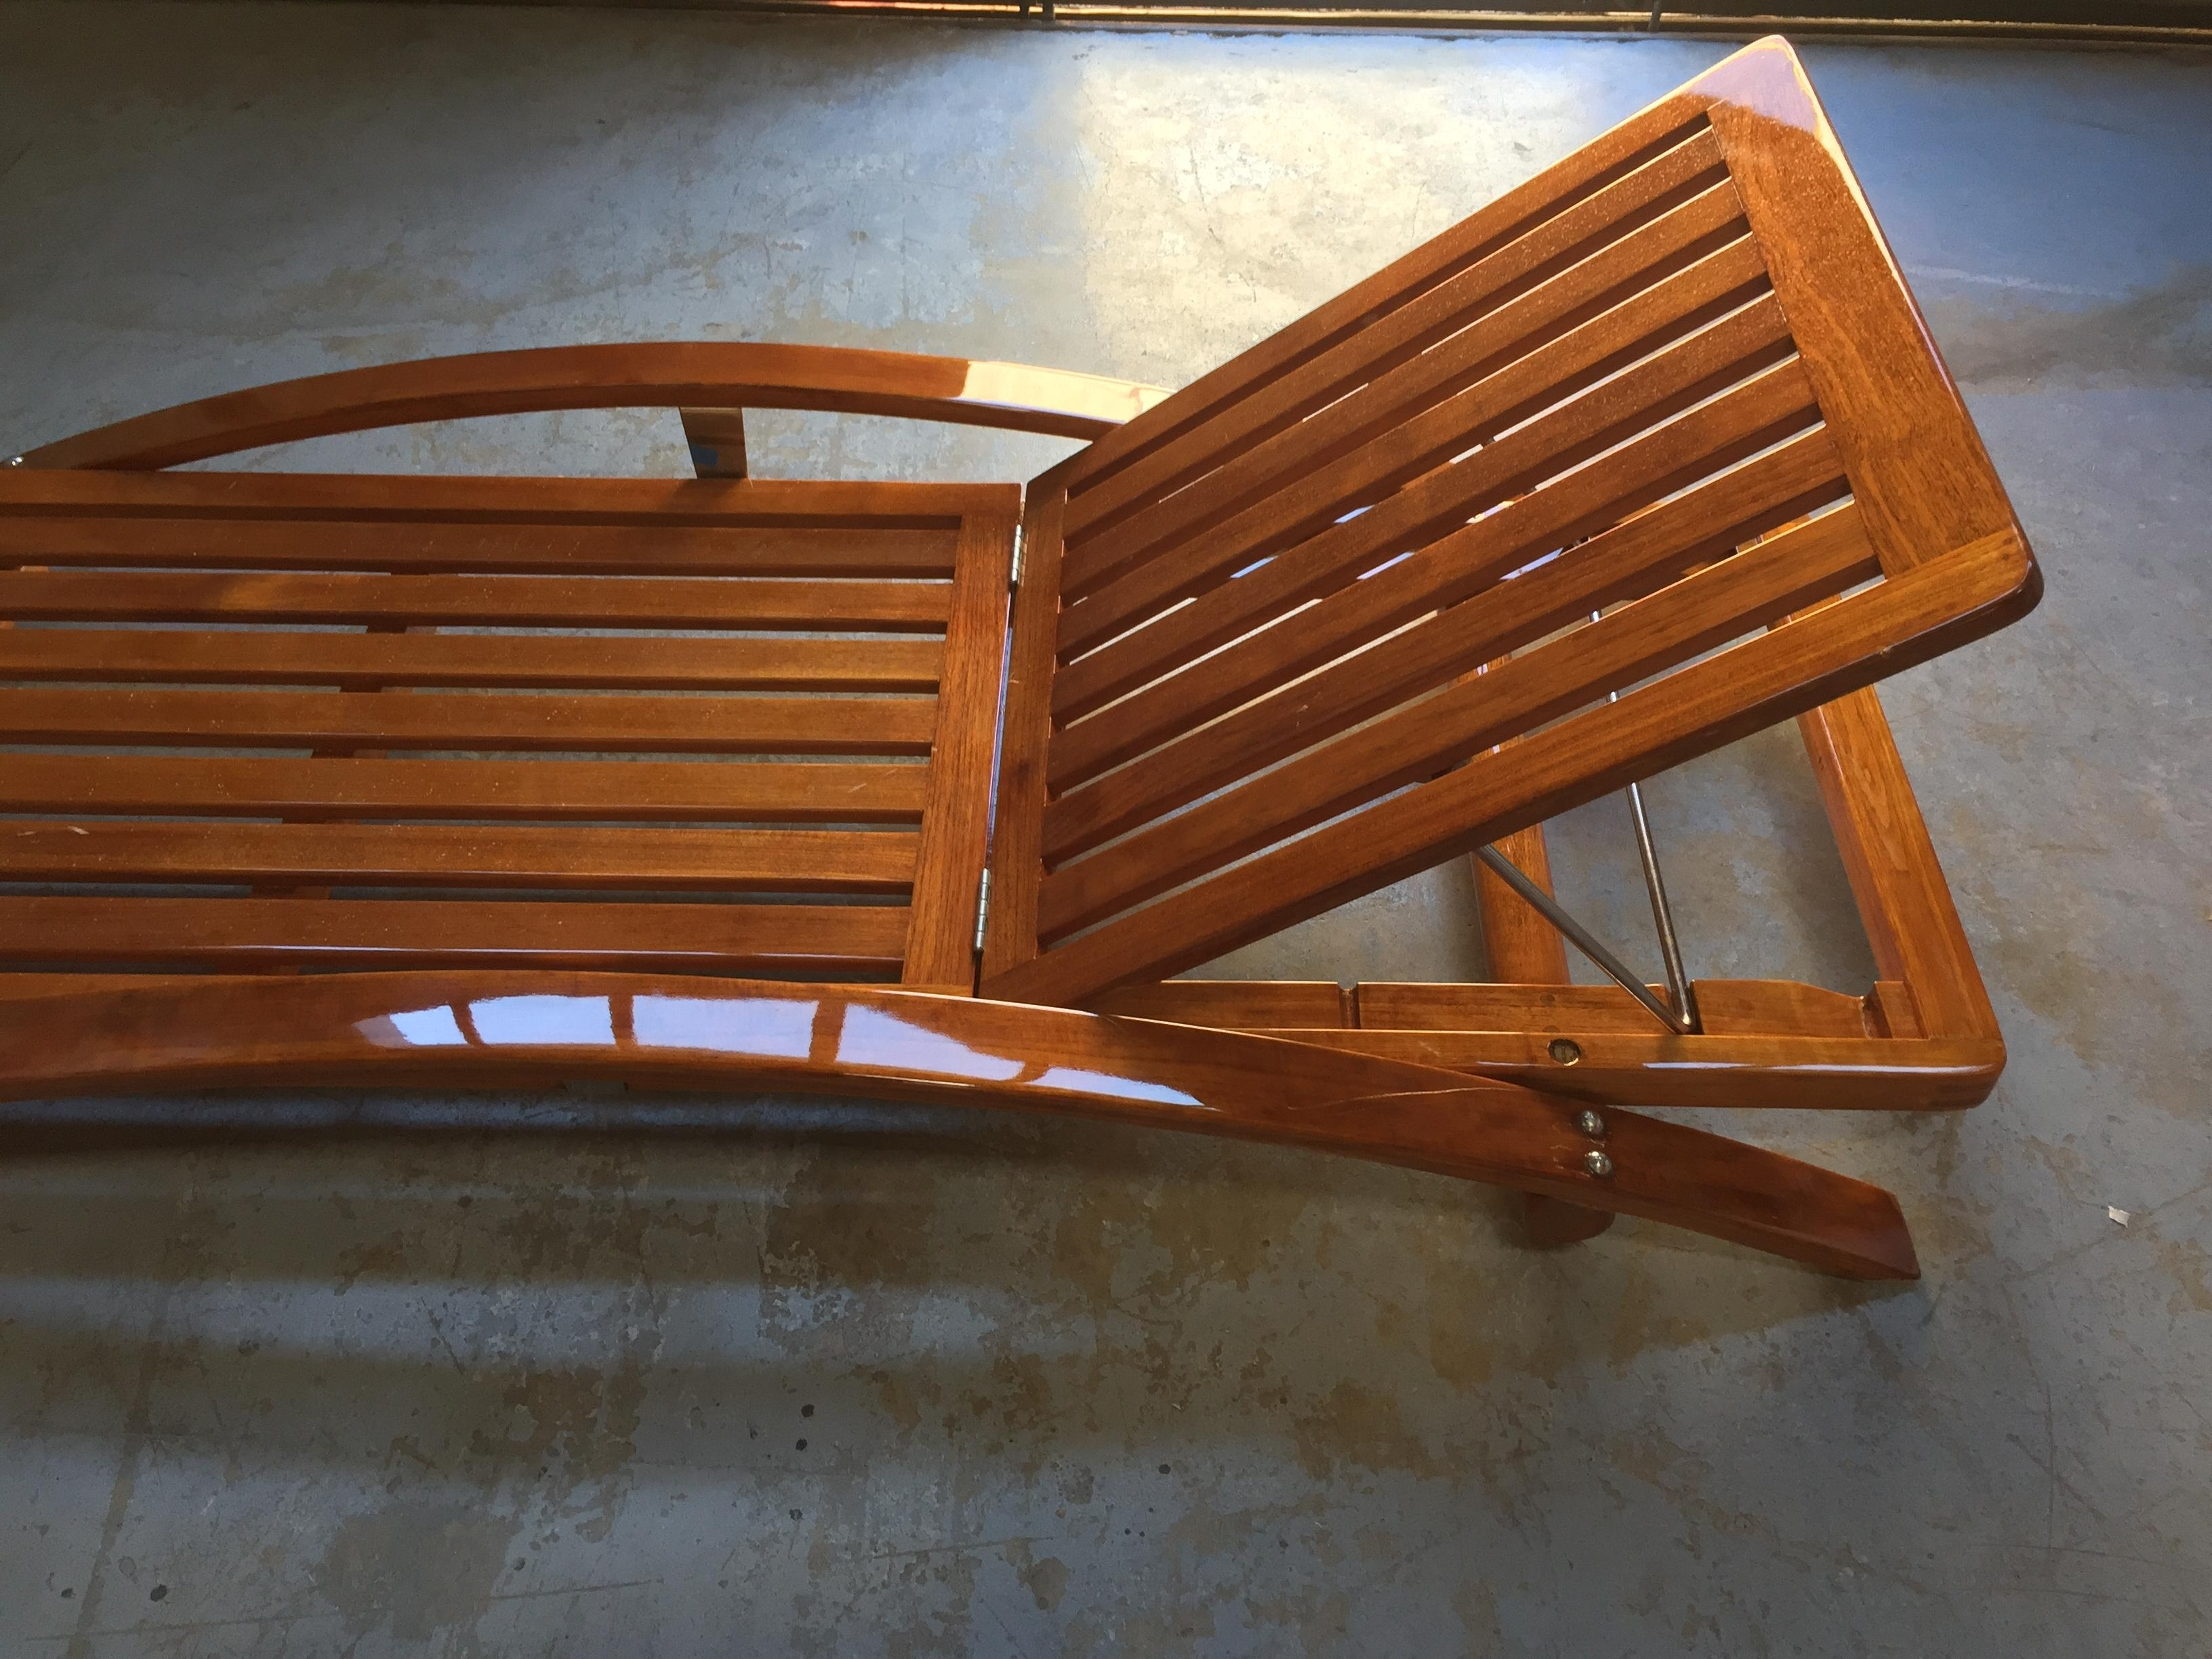 Preferred Teak Chaises Throughout Summit Teak Chaises Lounges – Cbay (View 6 of 15)